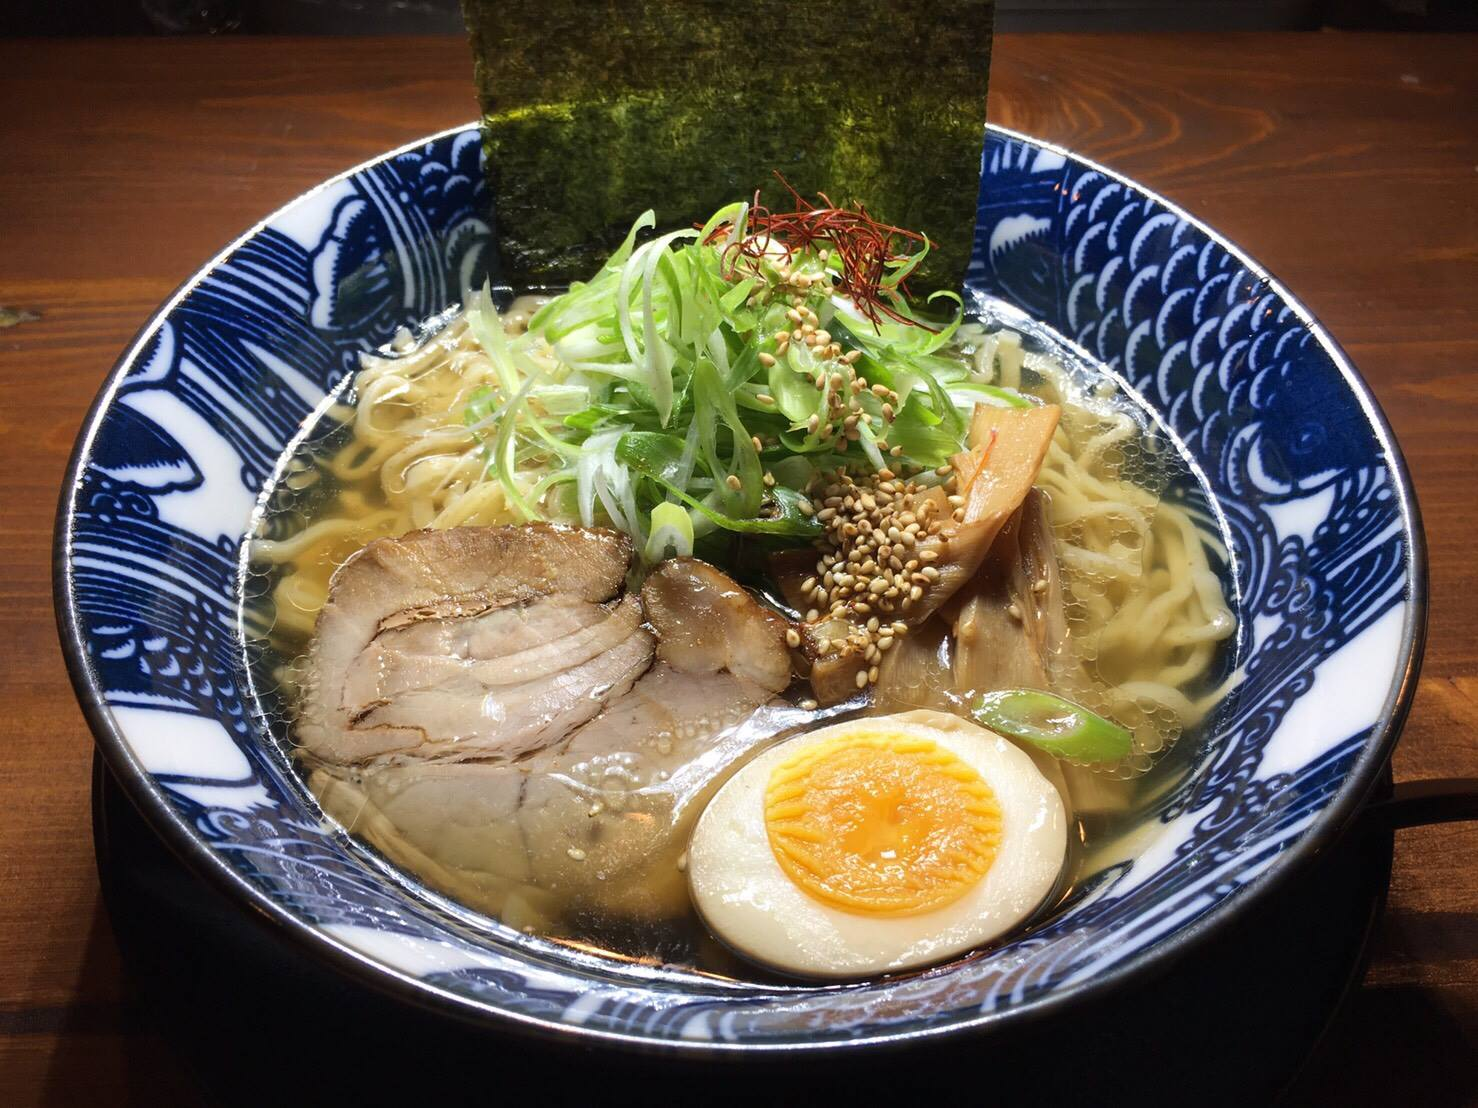 Japanese Ramen House Bringing More Noodles to FiDi